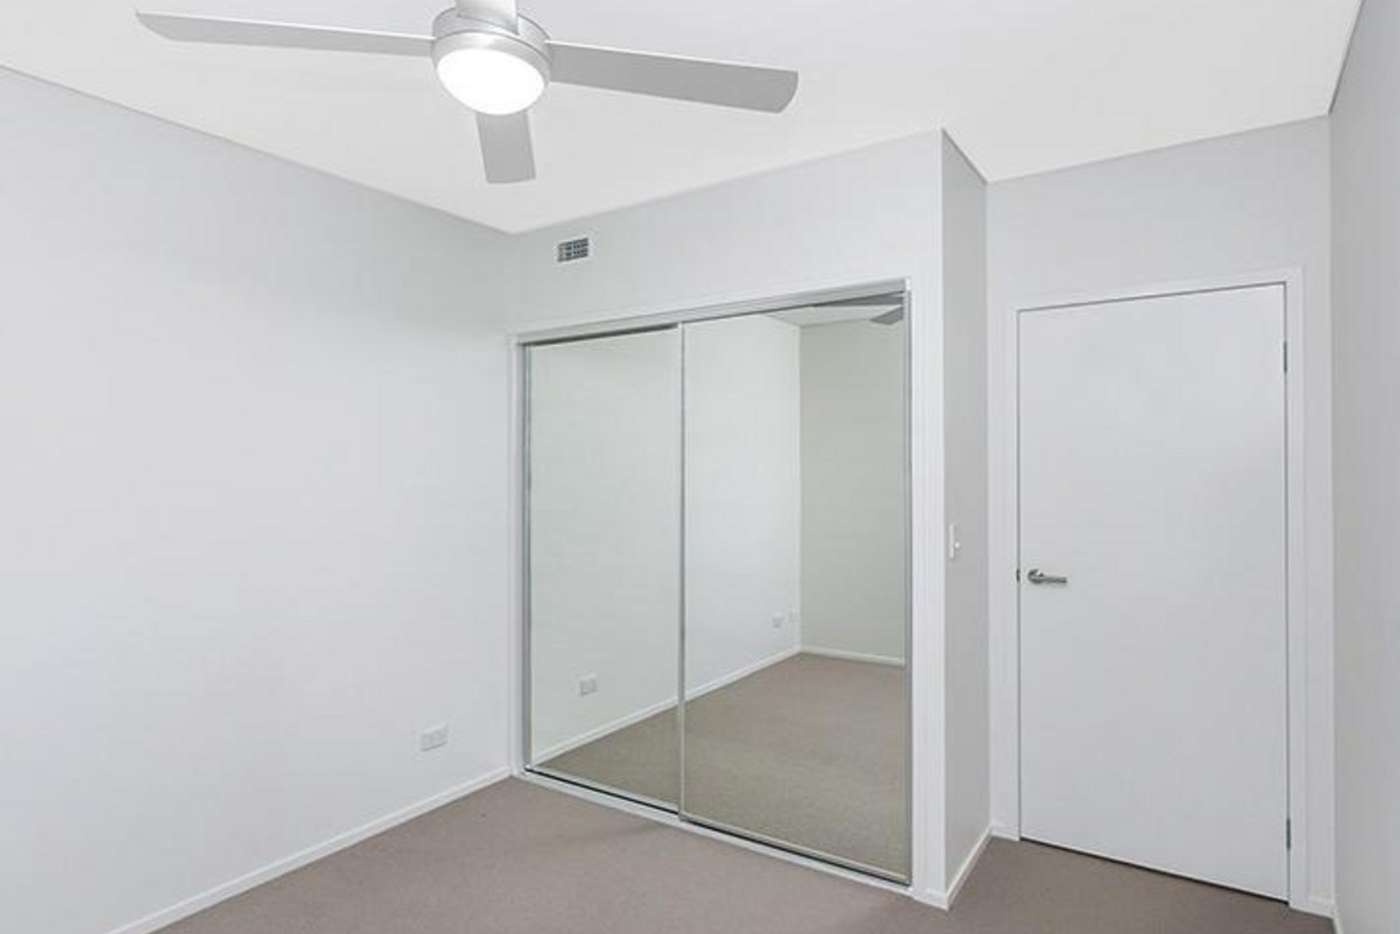 Sixth view of Homely unit listing, 24/40 Carl Street, Woolloongabba QLD 4102